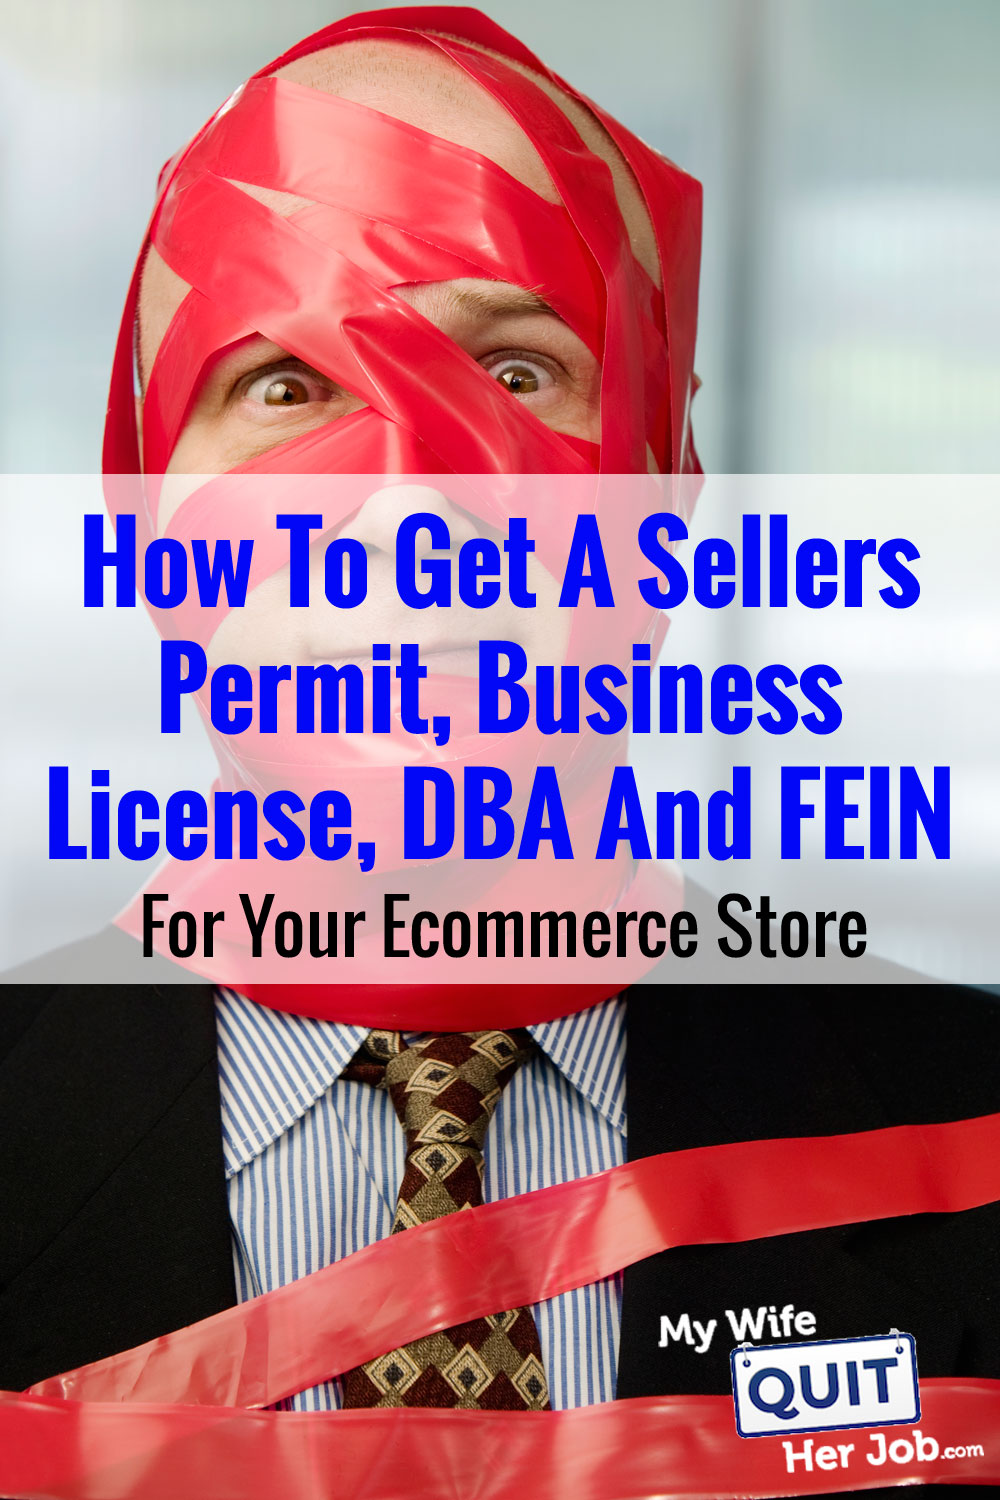 How To Get A Sellers Permit, Business License, DBA And FEIN For Your Ecommerce Business